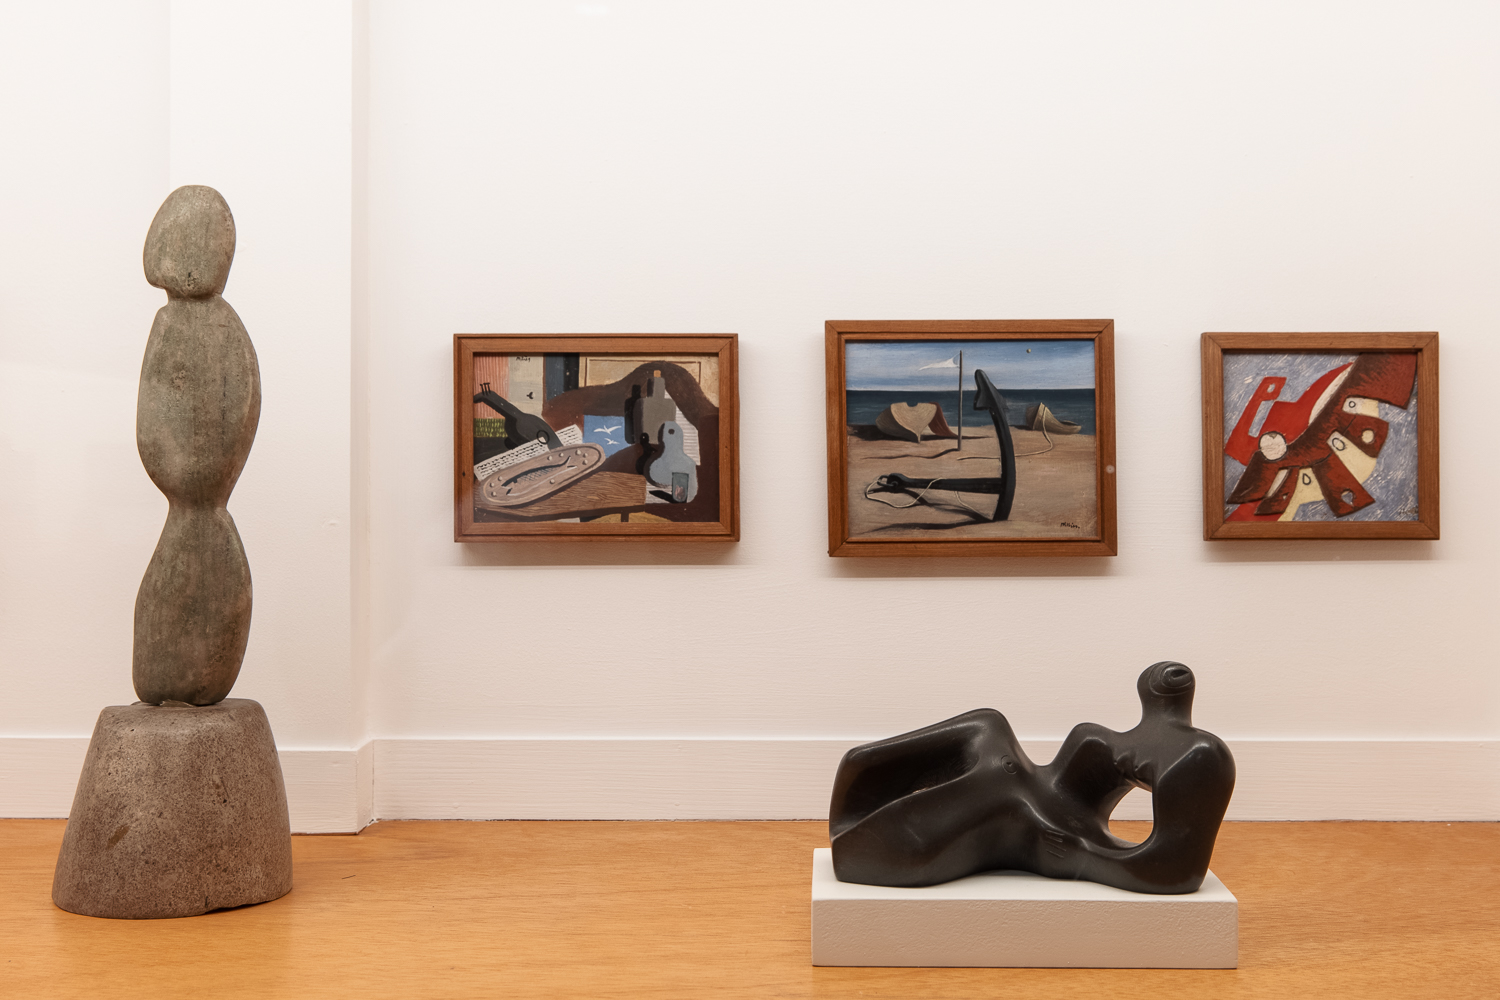 Five works of art in a gallery with white walls and wooden flooring. On the left side is a sculpture of three oval forms stacked on top of each other. On the back wall are three paintings of abstracted still lifes and still lifes. In the foreground is a Henry Moore sculpture of an abstracted reclining human figure.